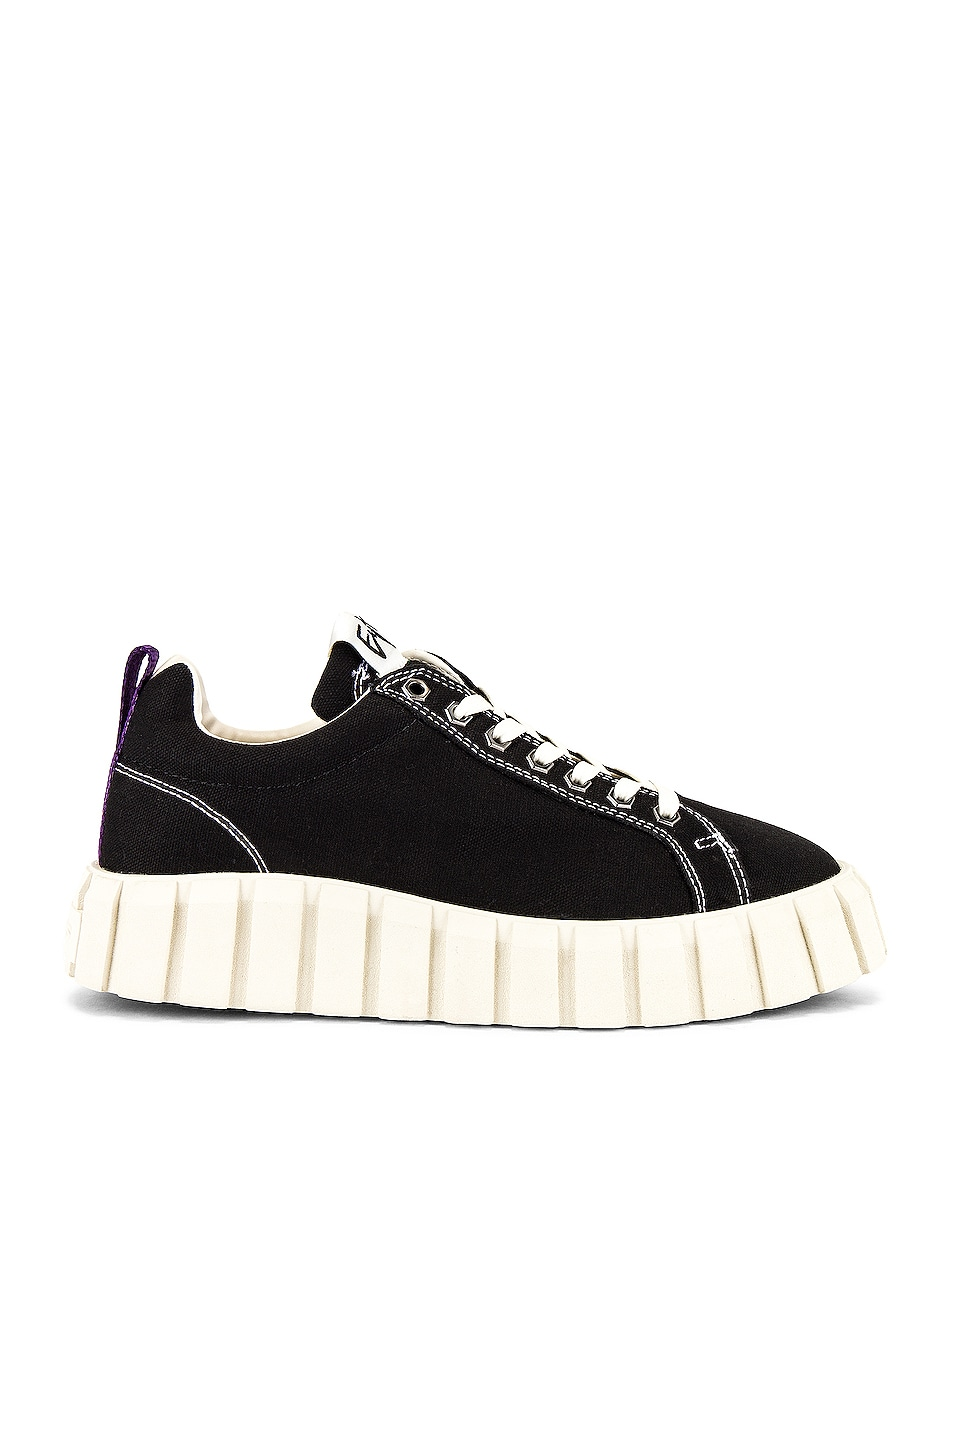 Image 1 of Eytys Odessa Canvas Sneaker in Black